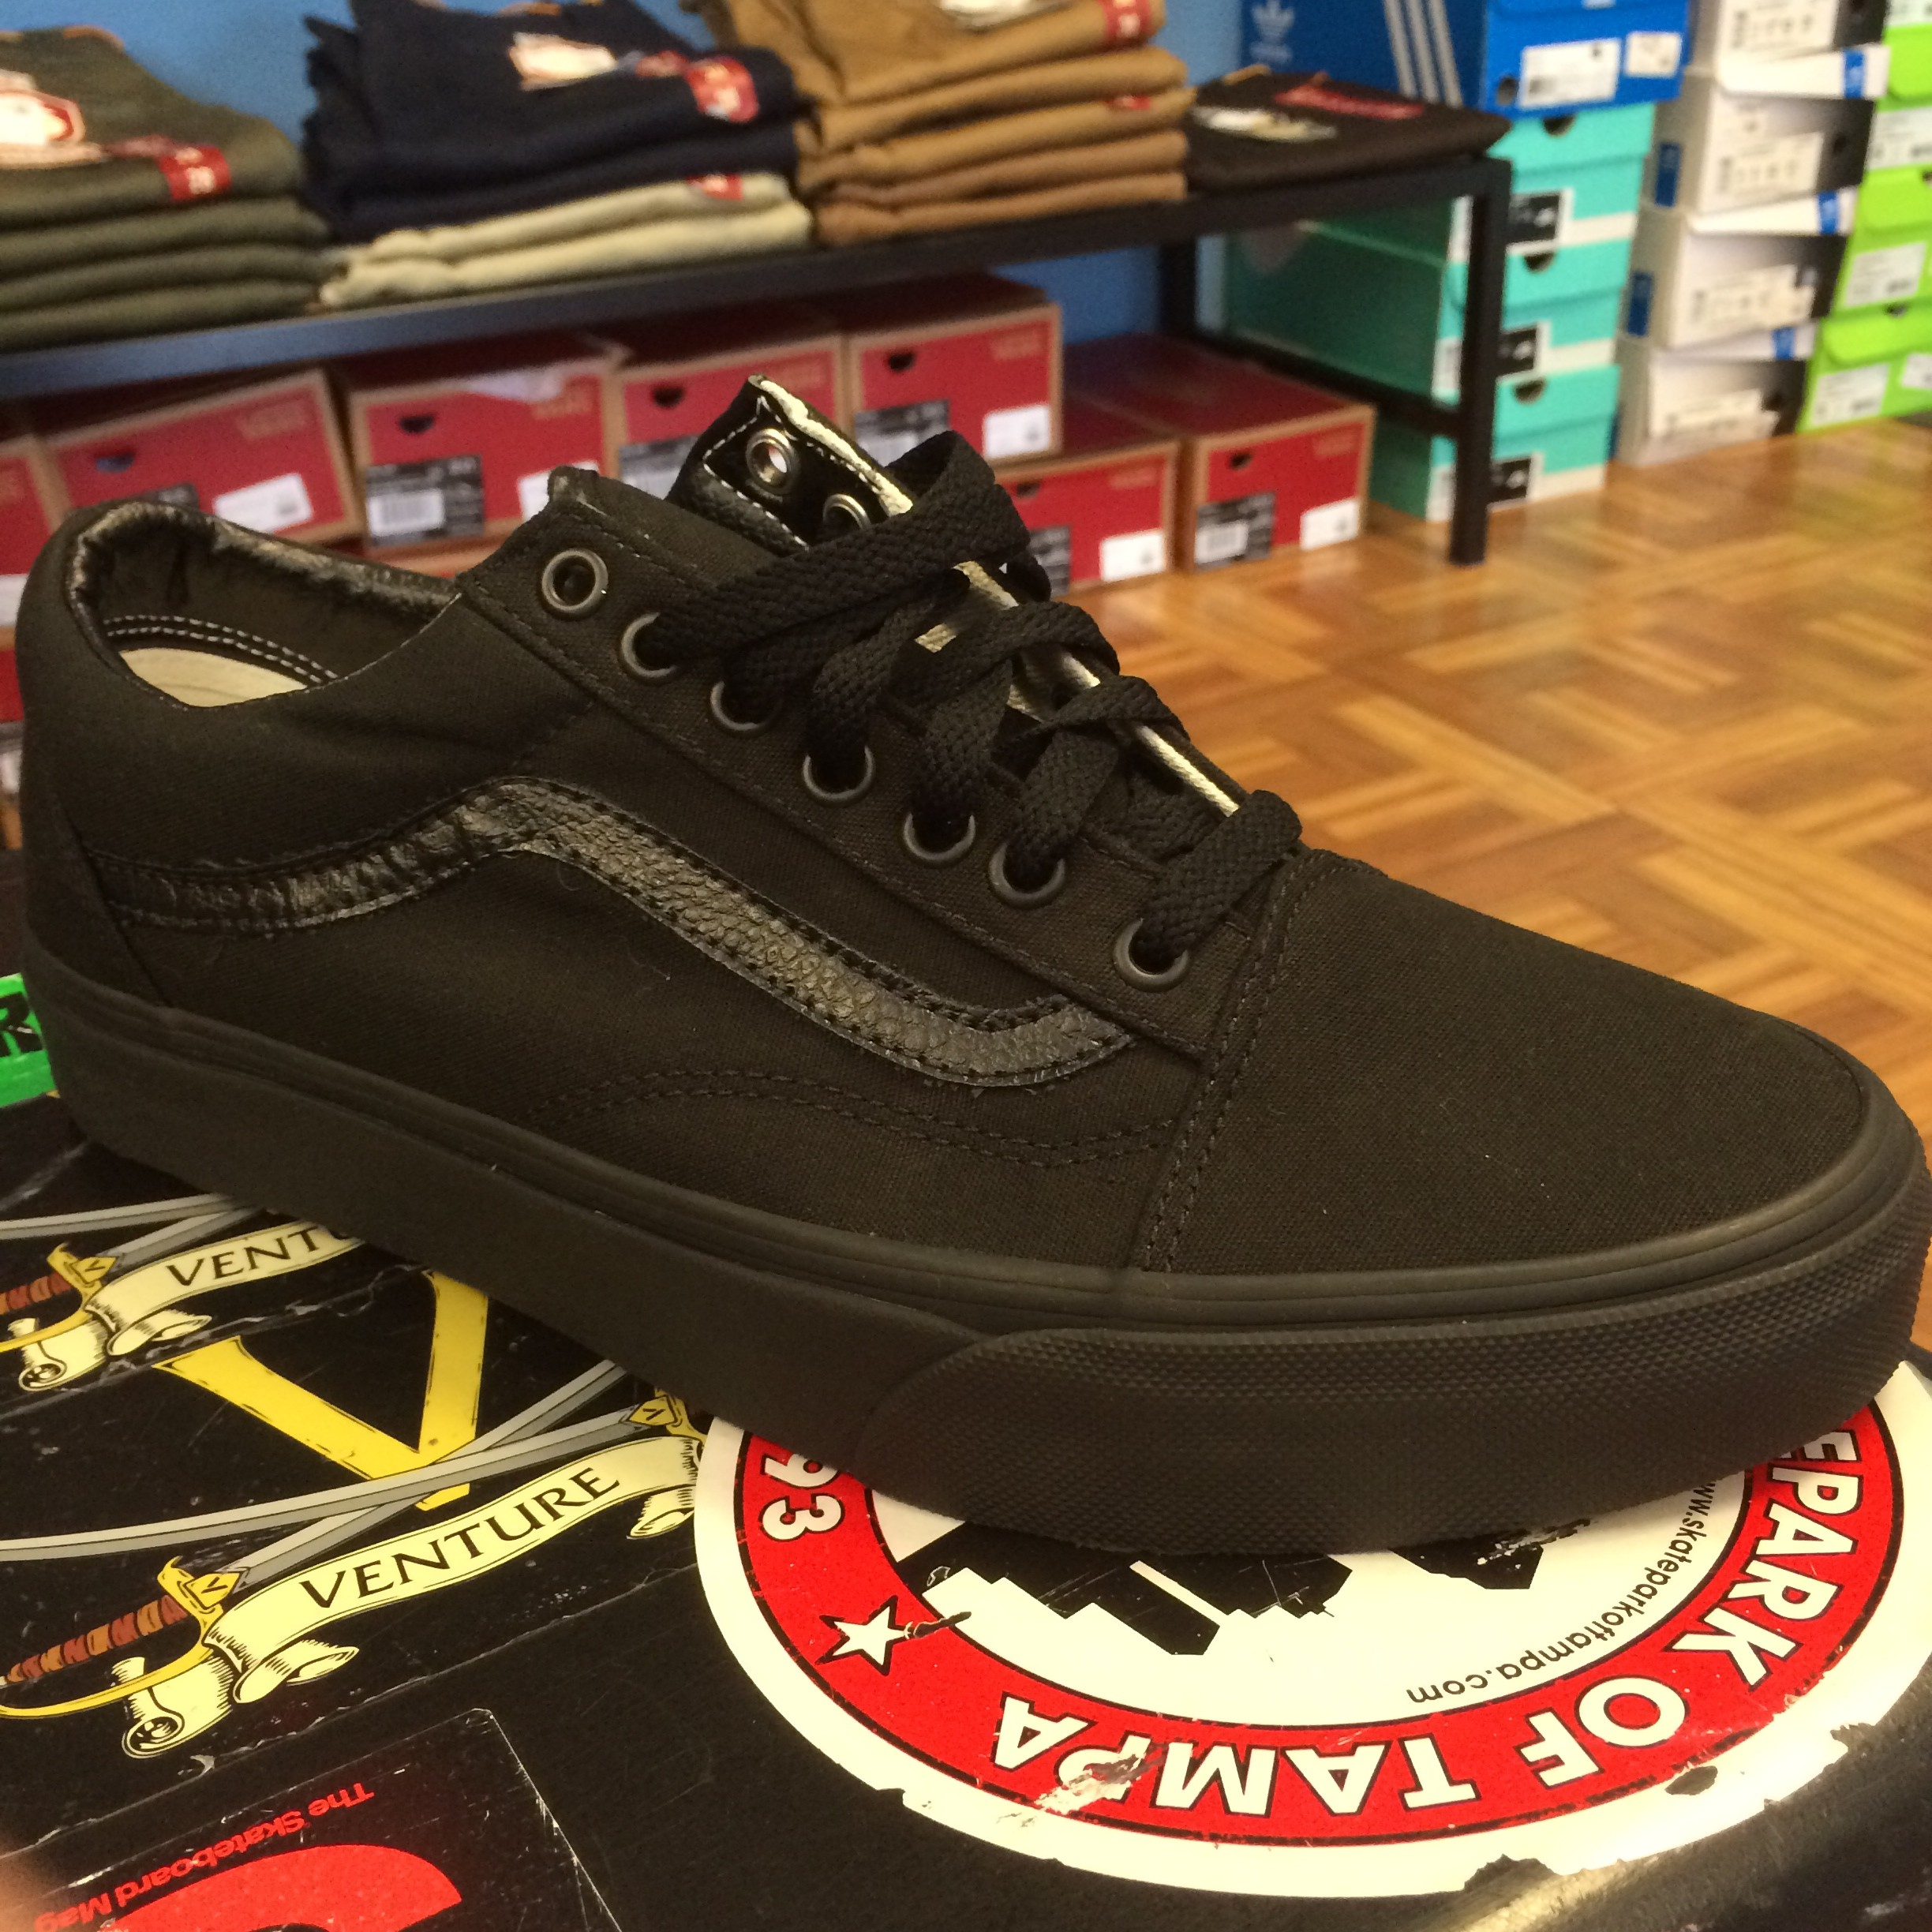 4571c27af089 New Shoes From Vans All Black Old Skool   New Balance Numeric Logan 636  Just Came In At Our Parkville Location.